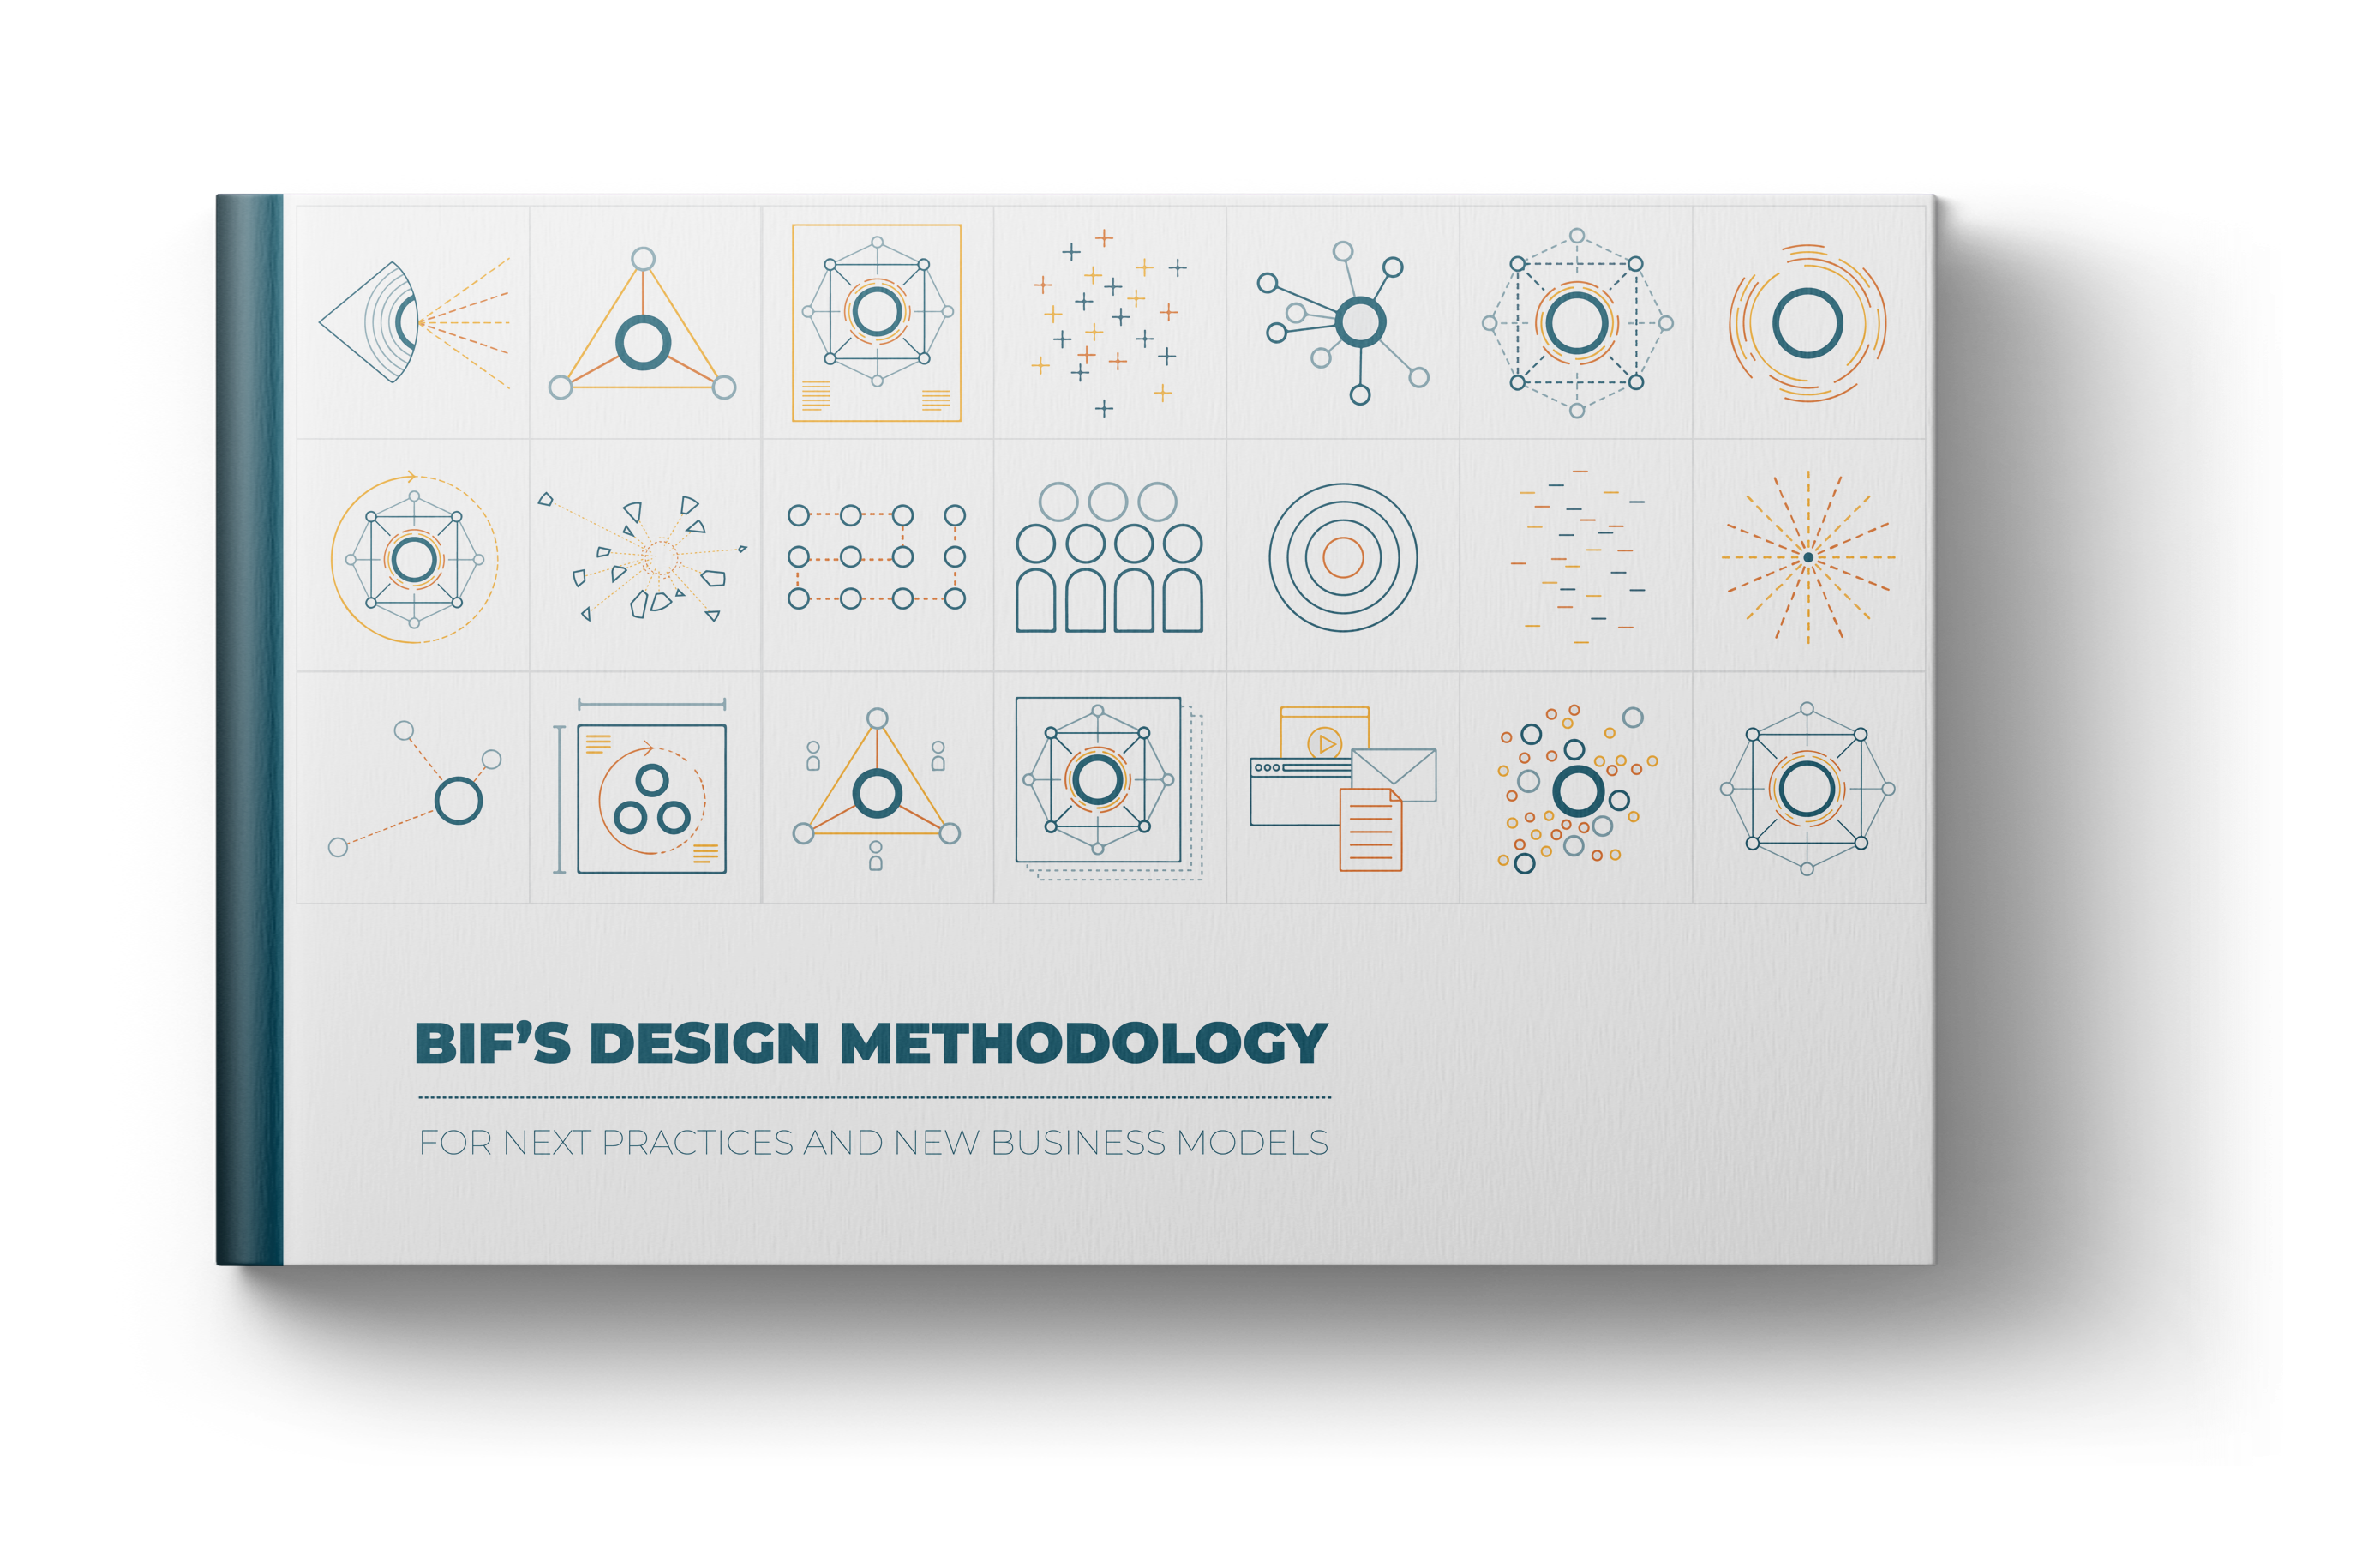 BIF's Design Methodology for Next Practices and New Business Models